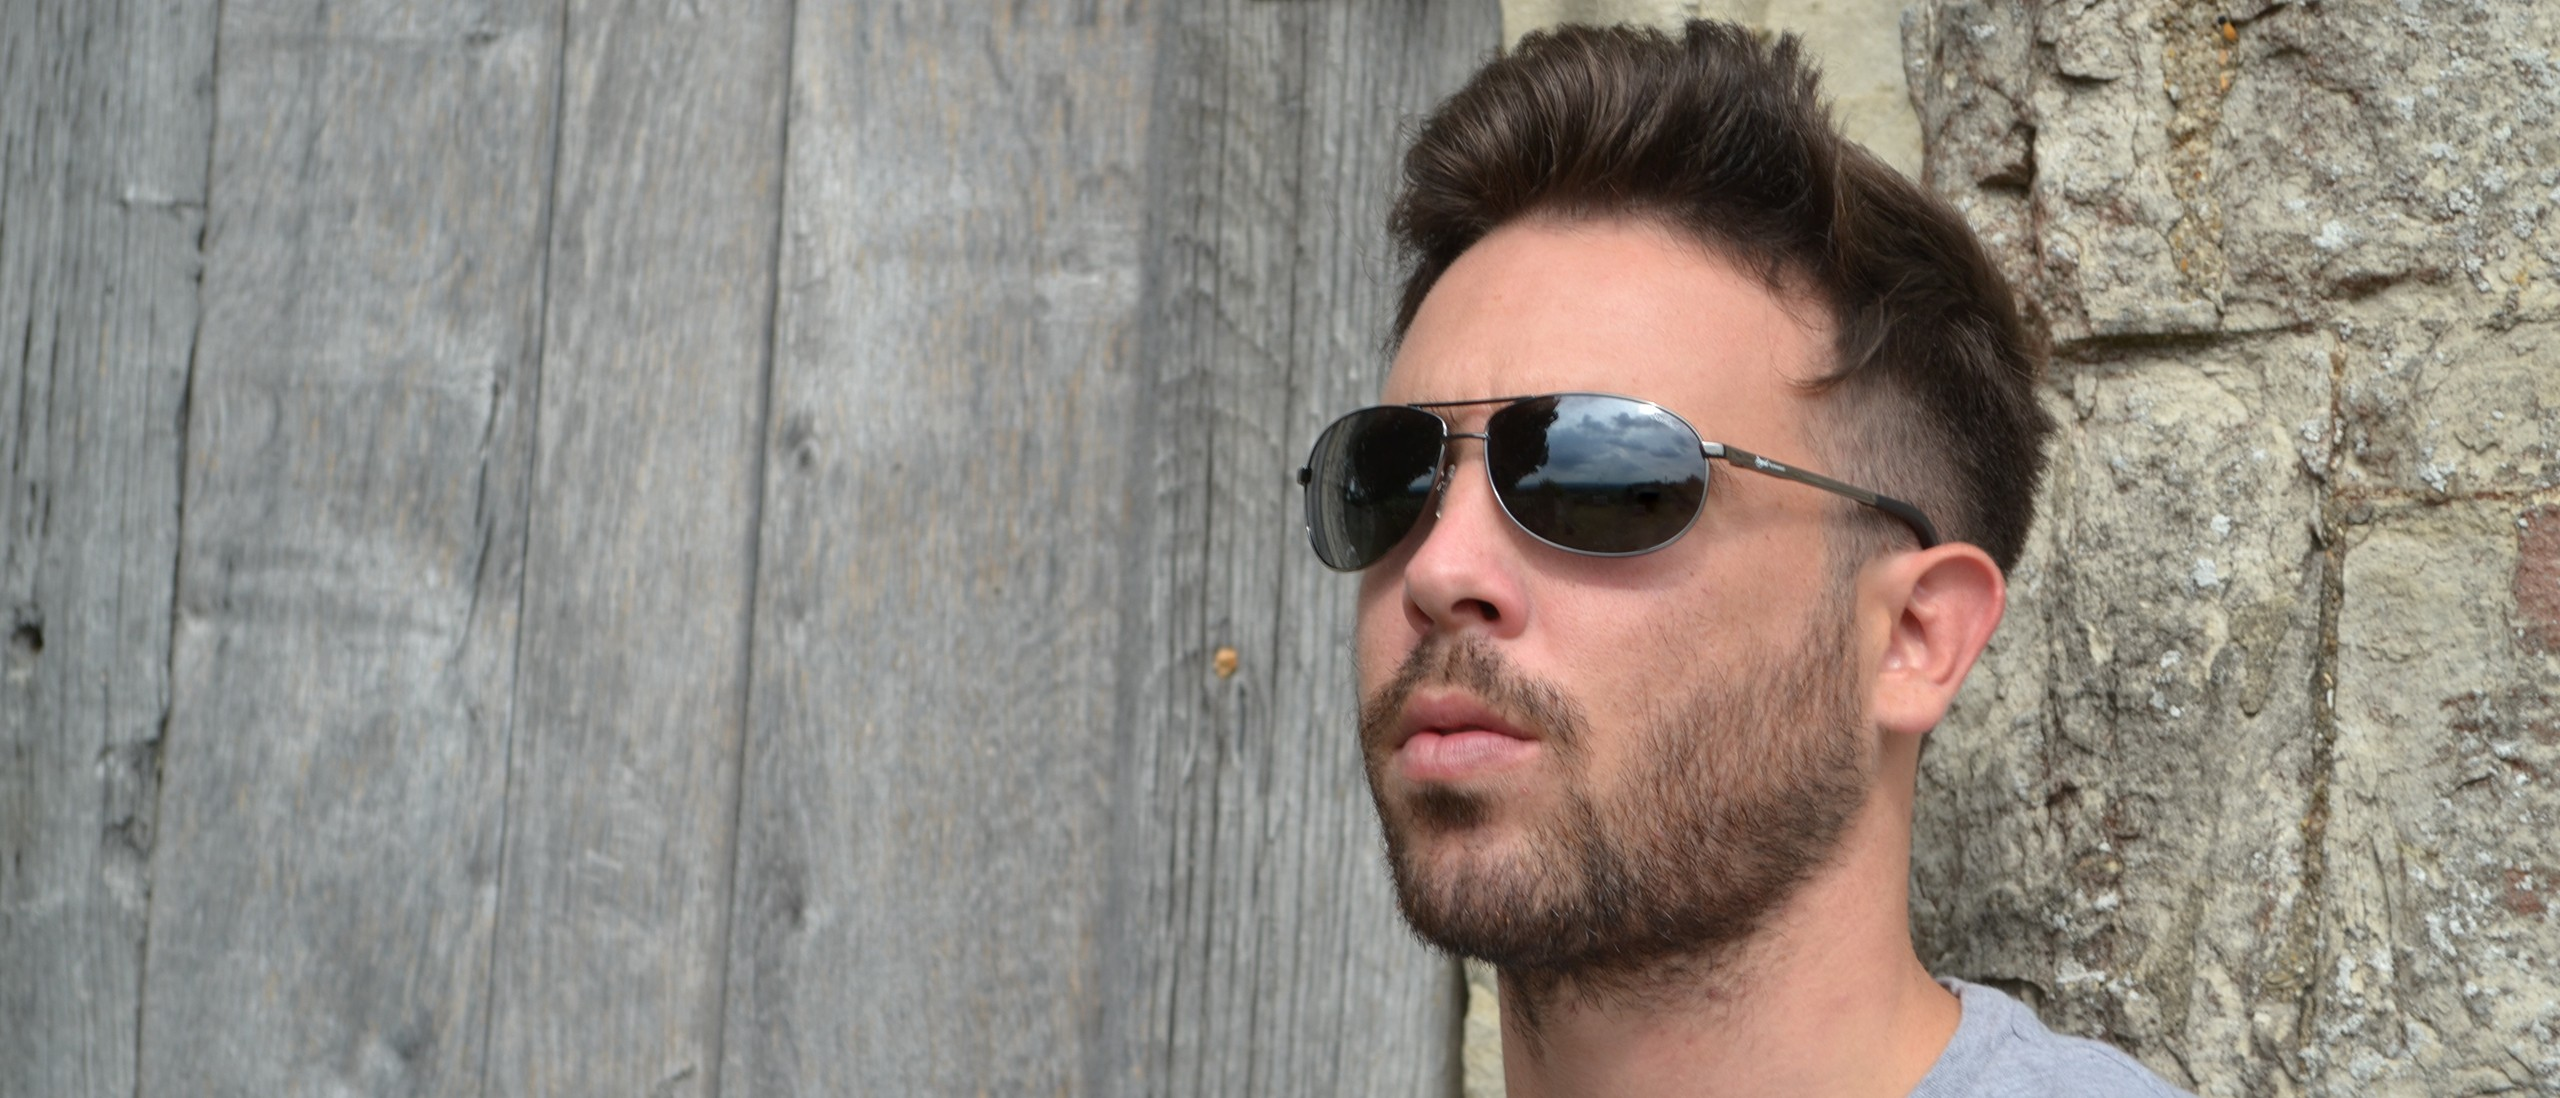 Altius polarized aviators for sports and leisure by Rapid Eyewear